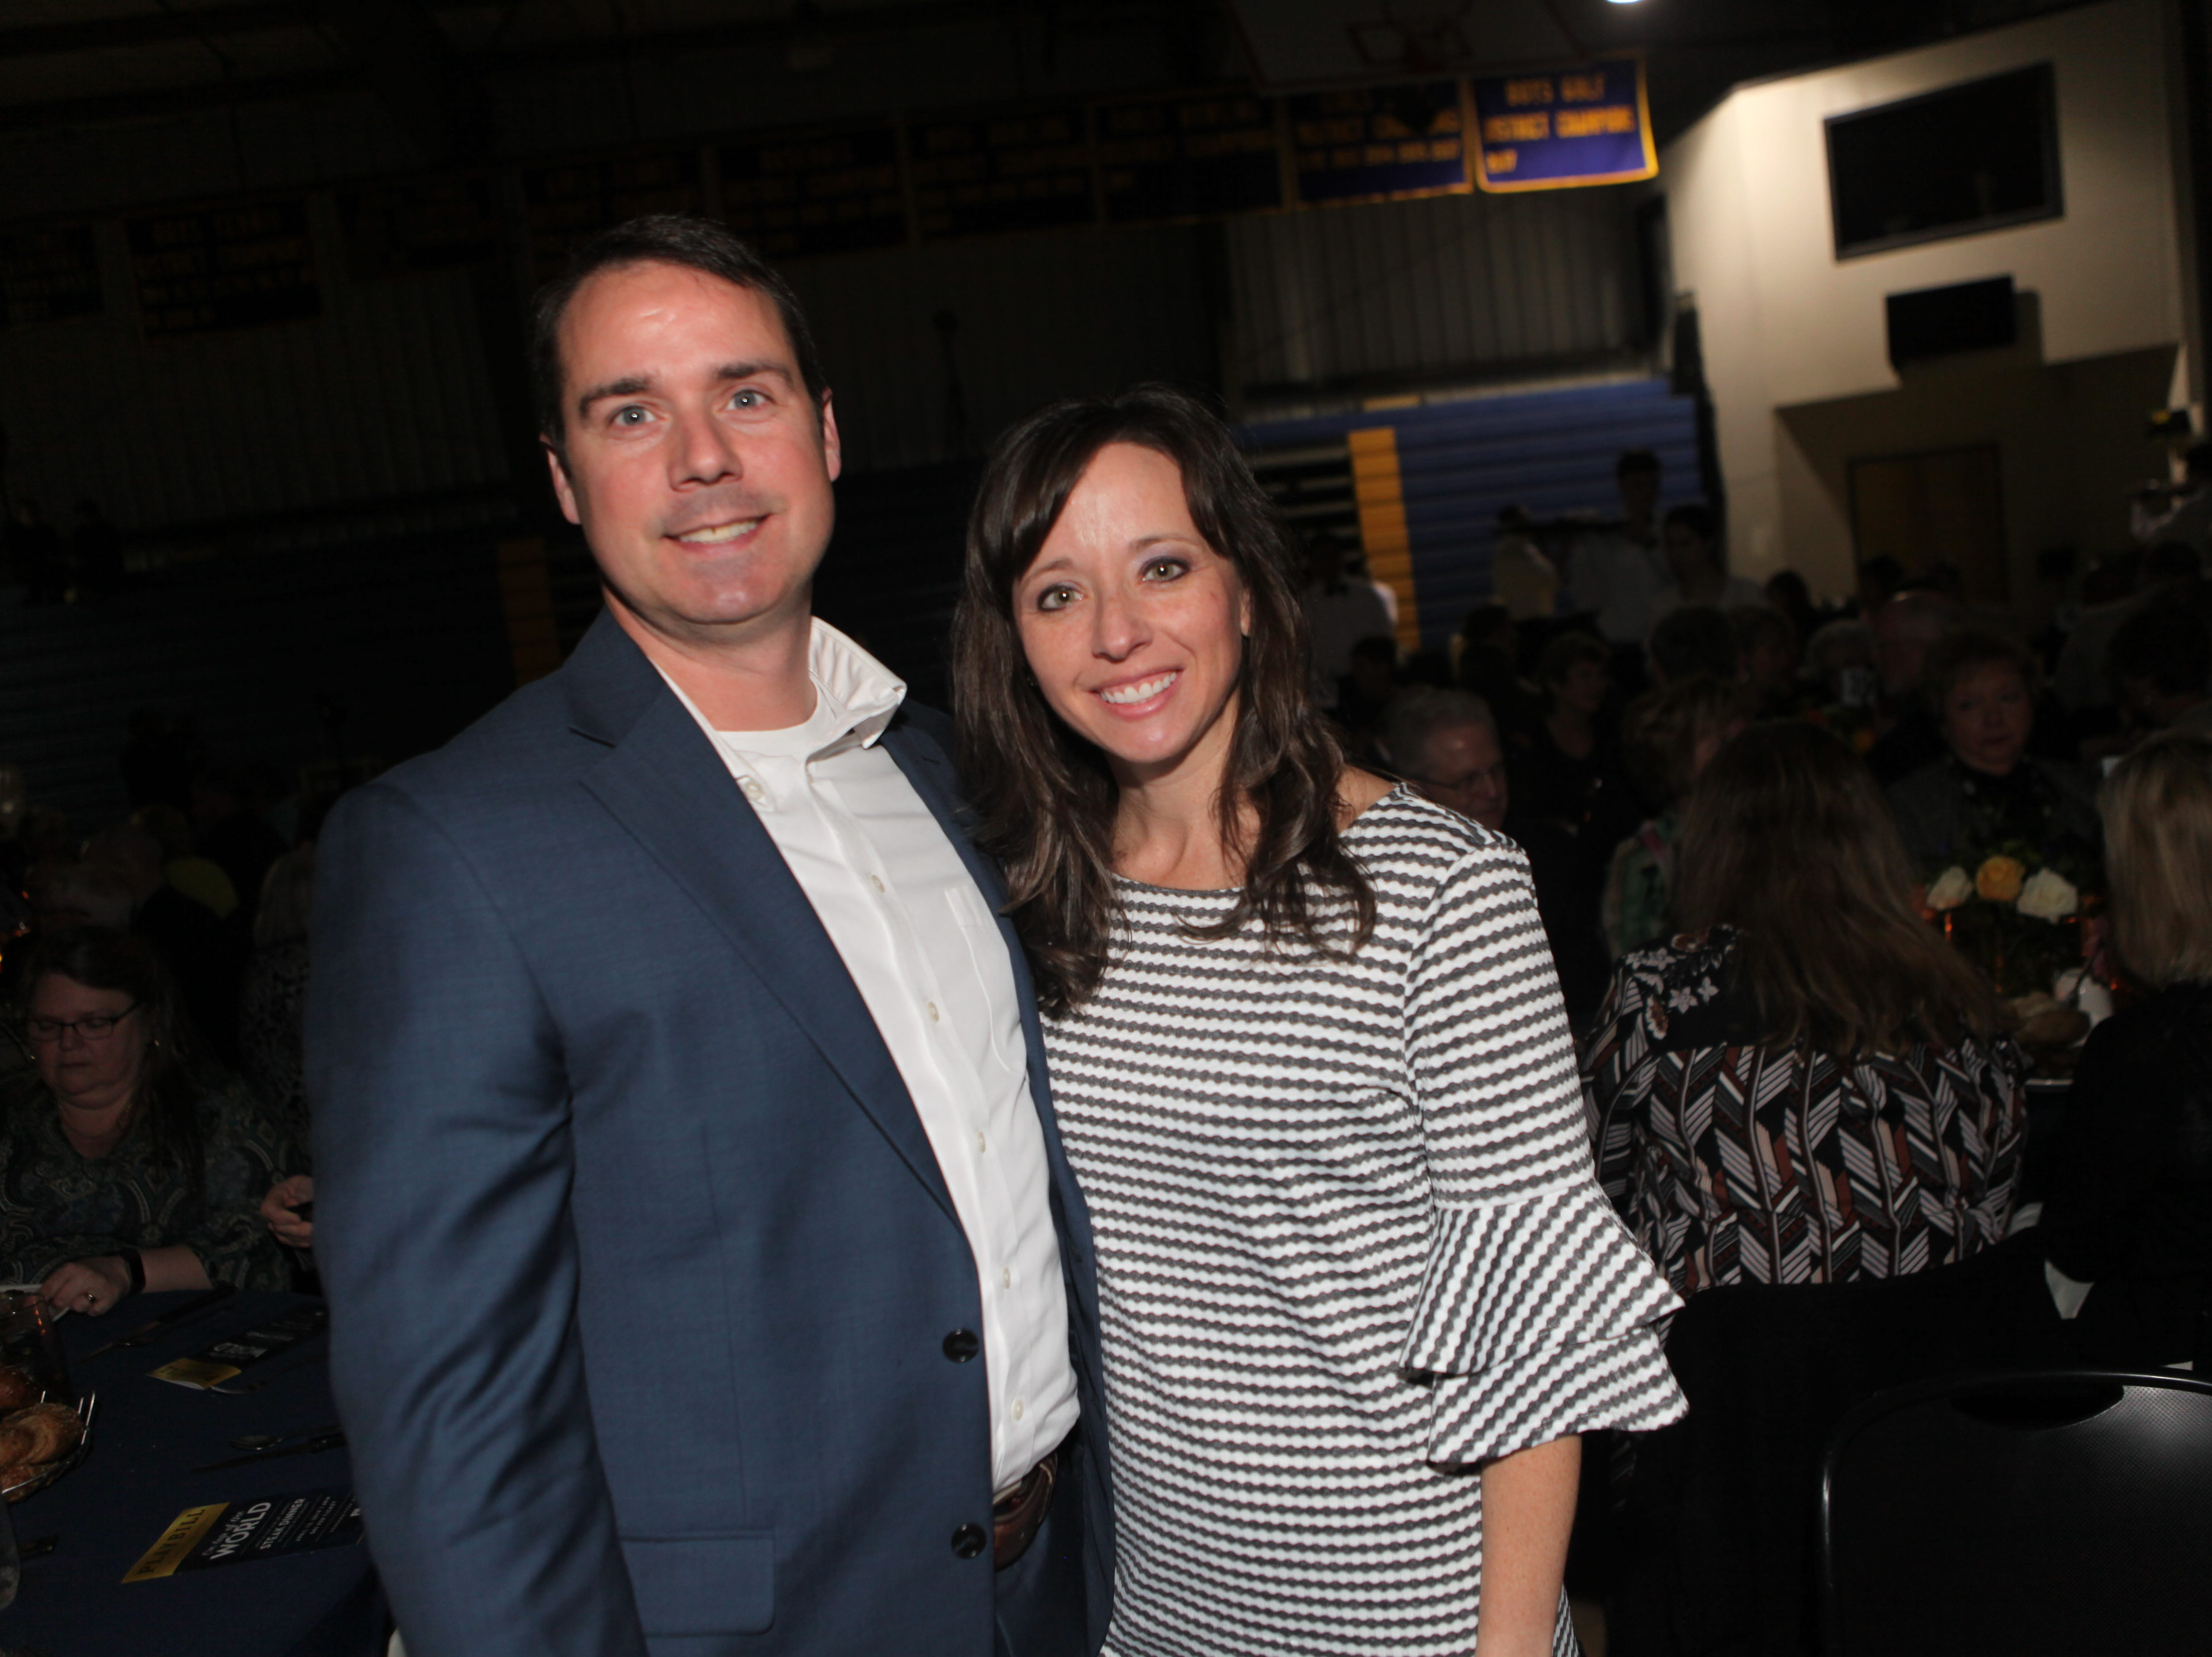 Chas Greer and Casey Jenkins at Clarksville Academy's Steak Dinner on Saturday, April 13, 2019.